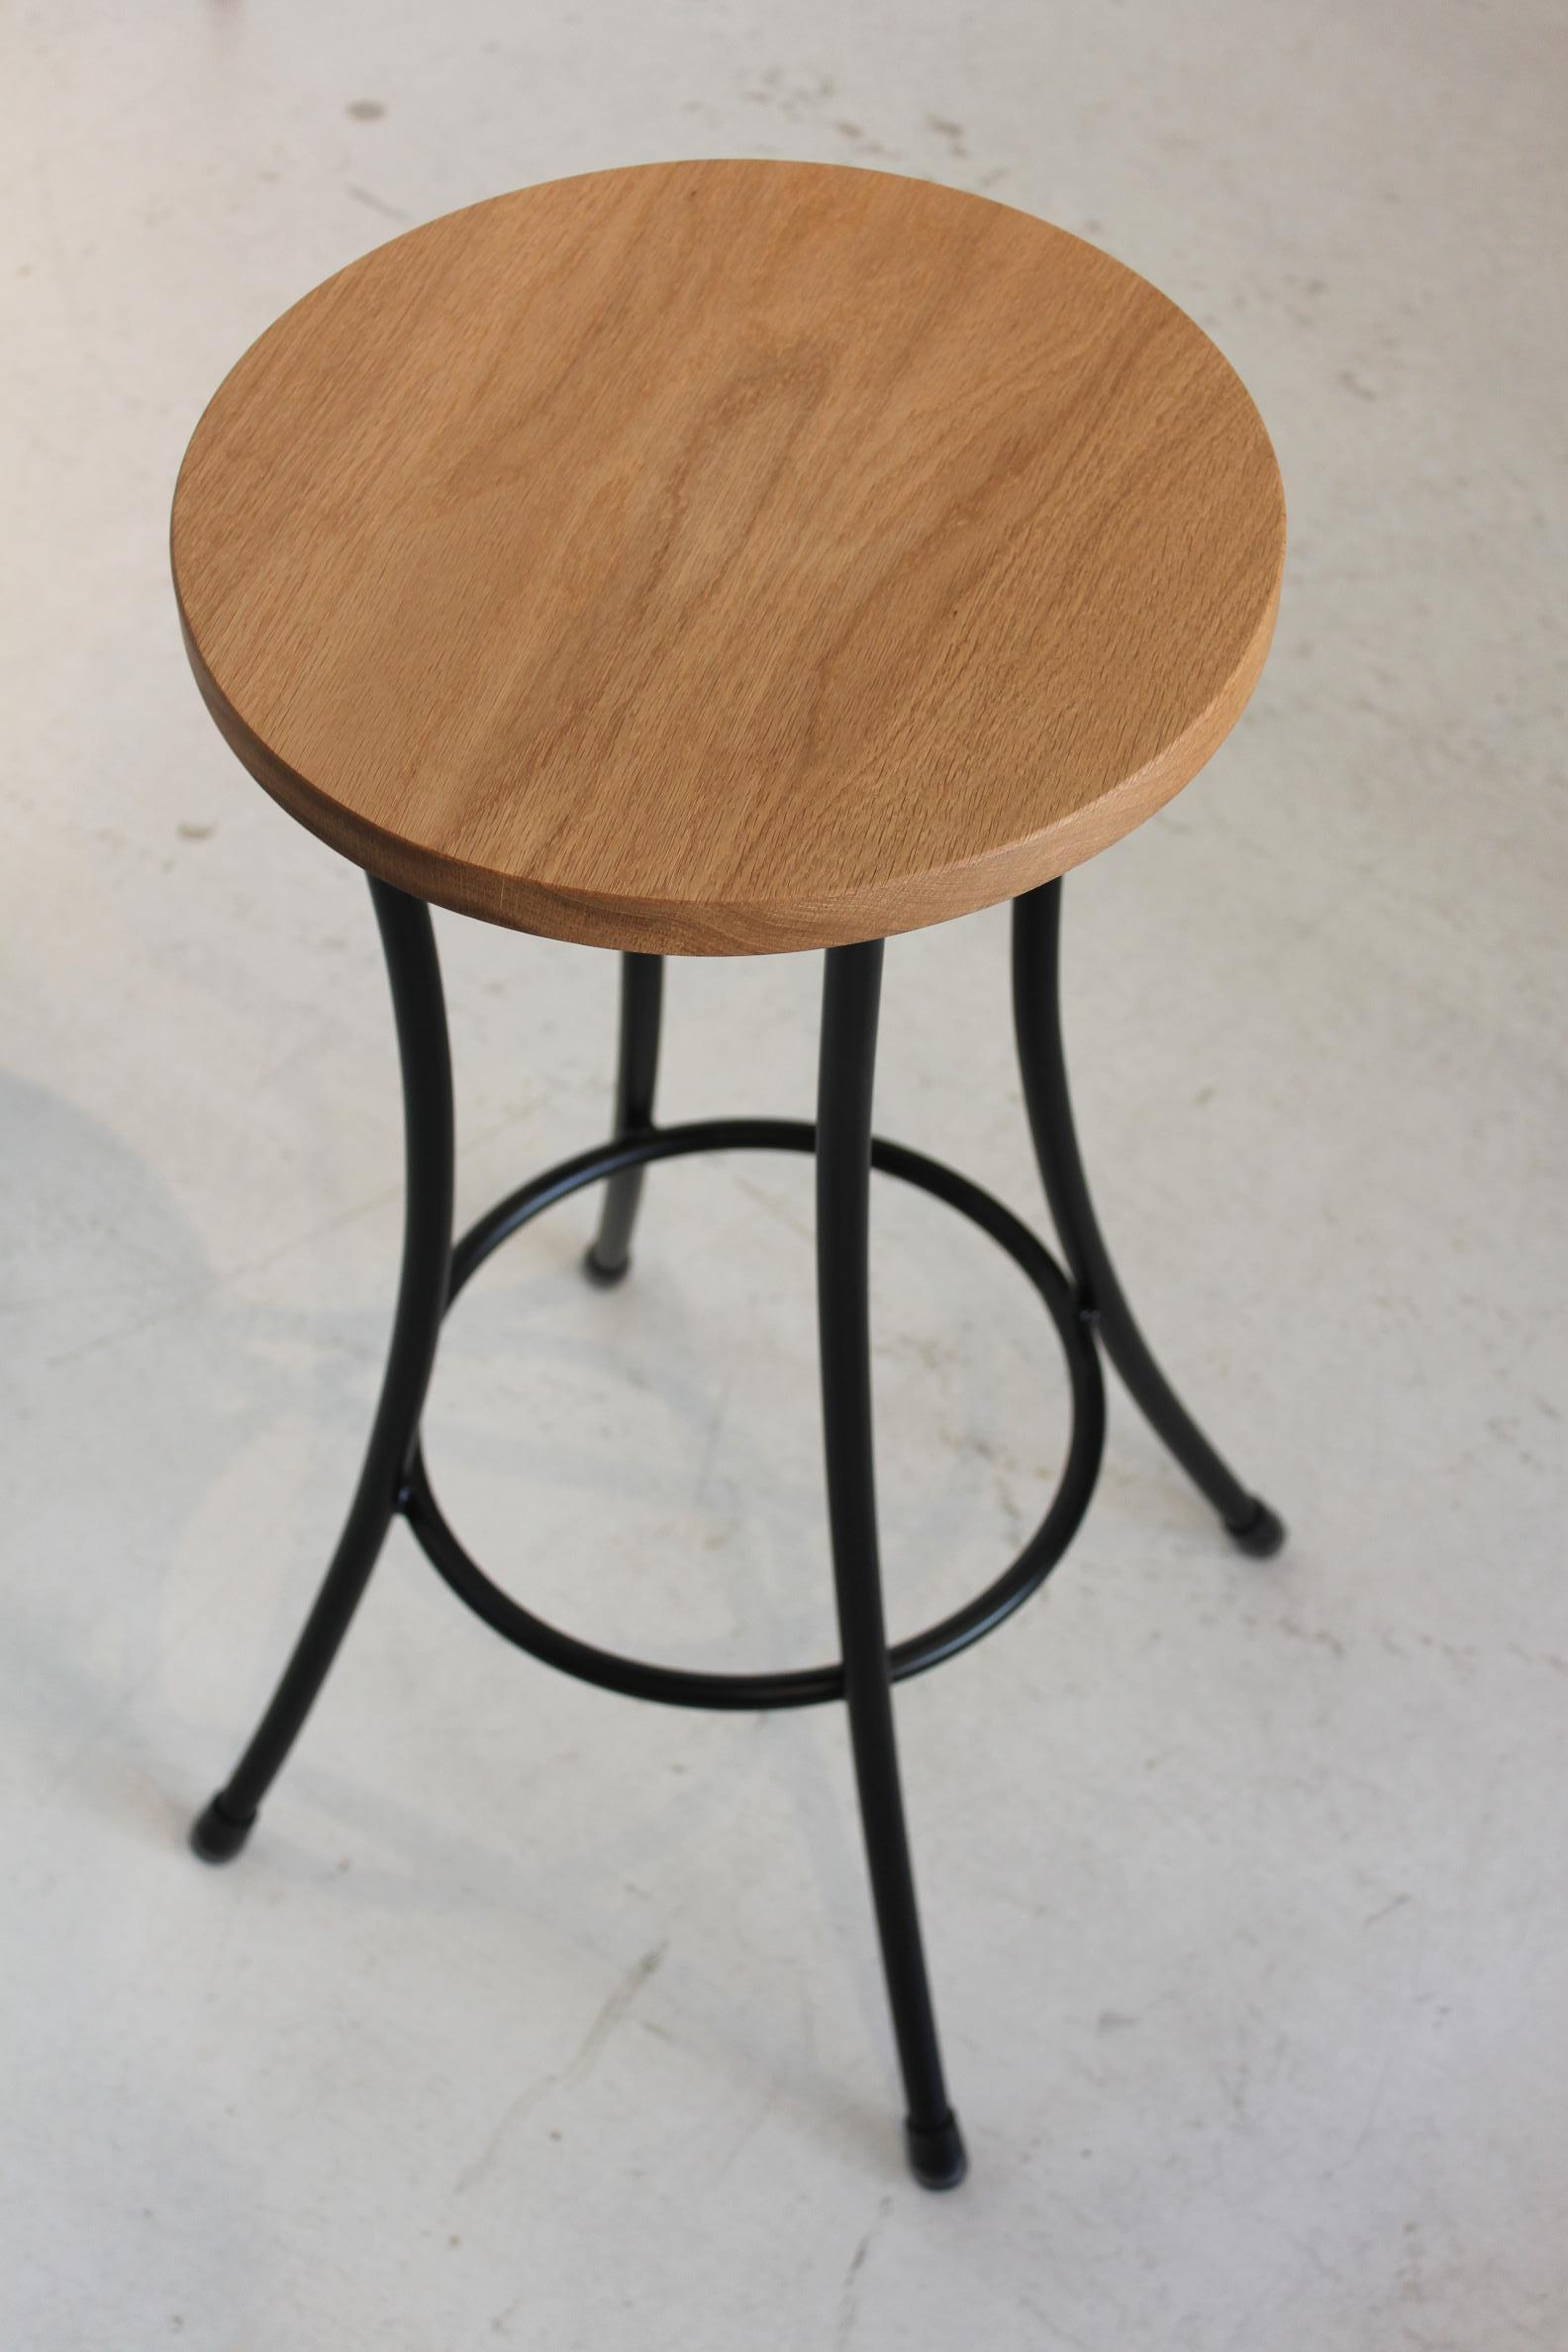 NS IRON COUNTER & NS IRON STOOL_c0146581_23271447.jpg